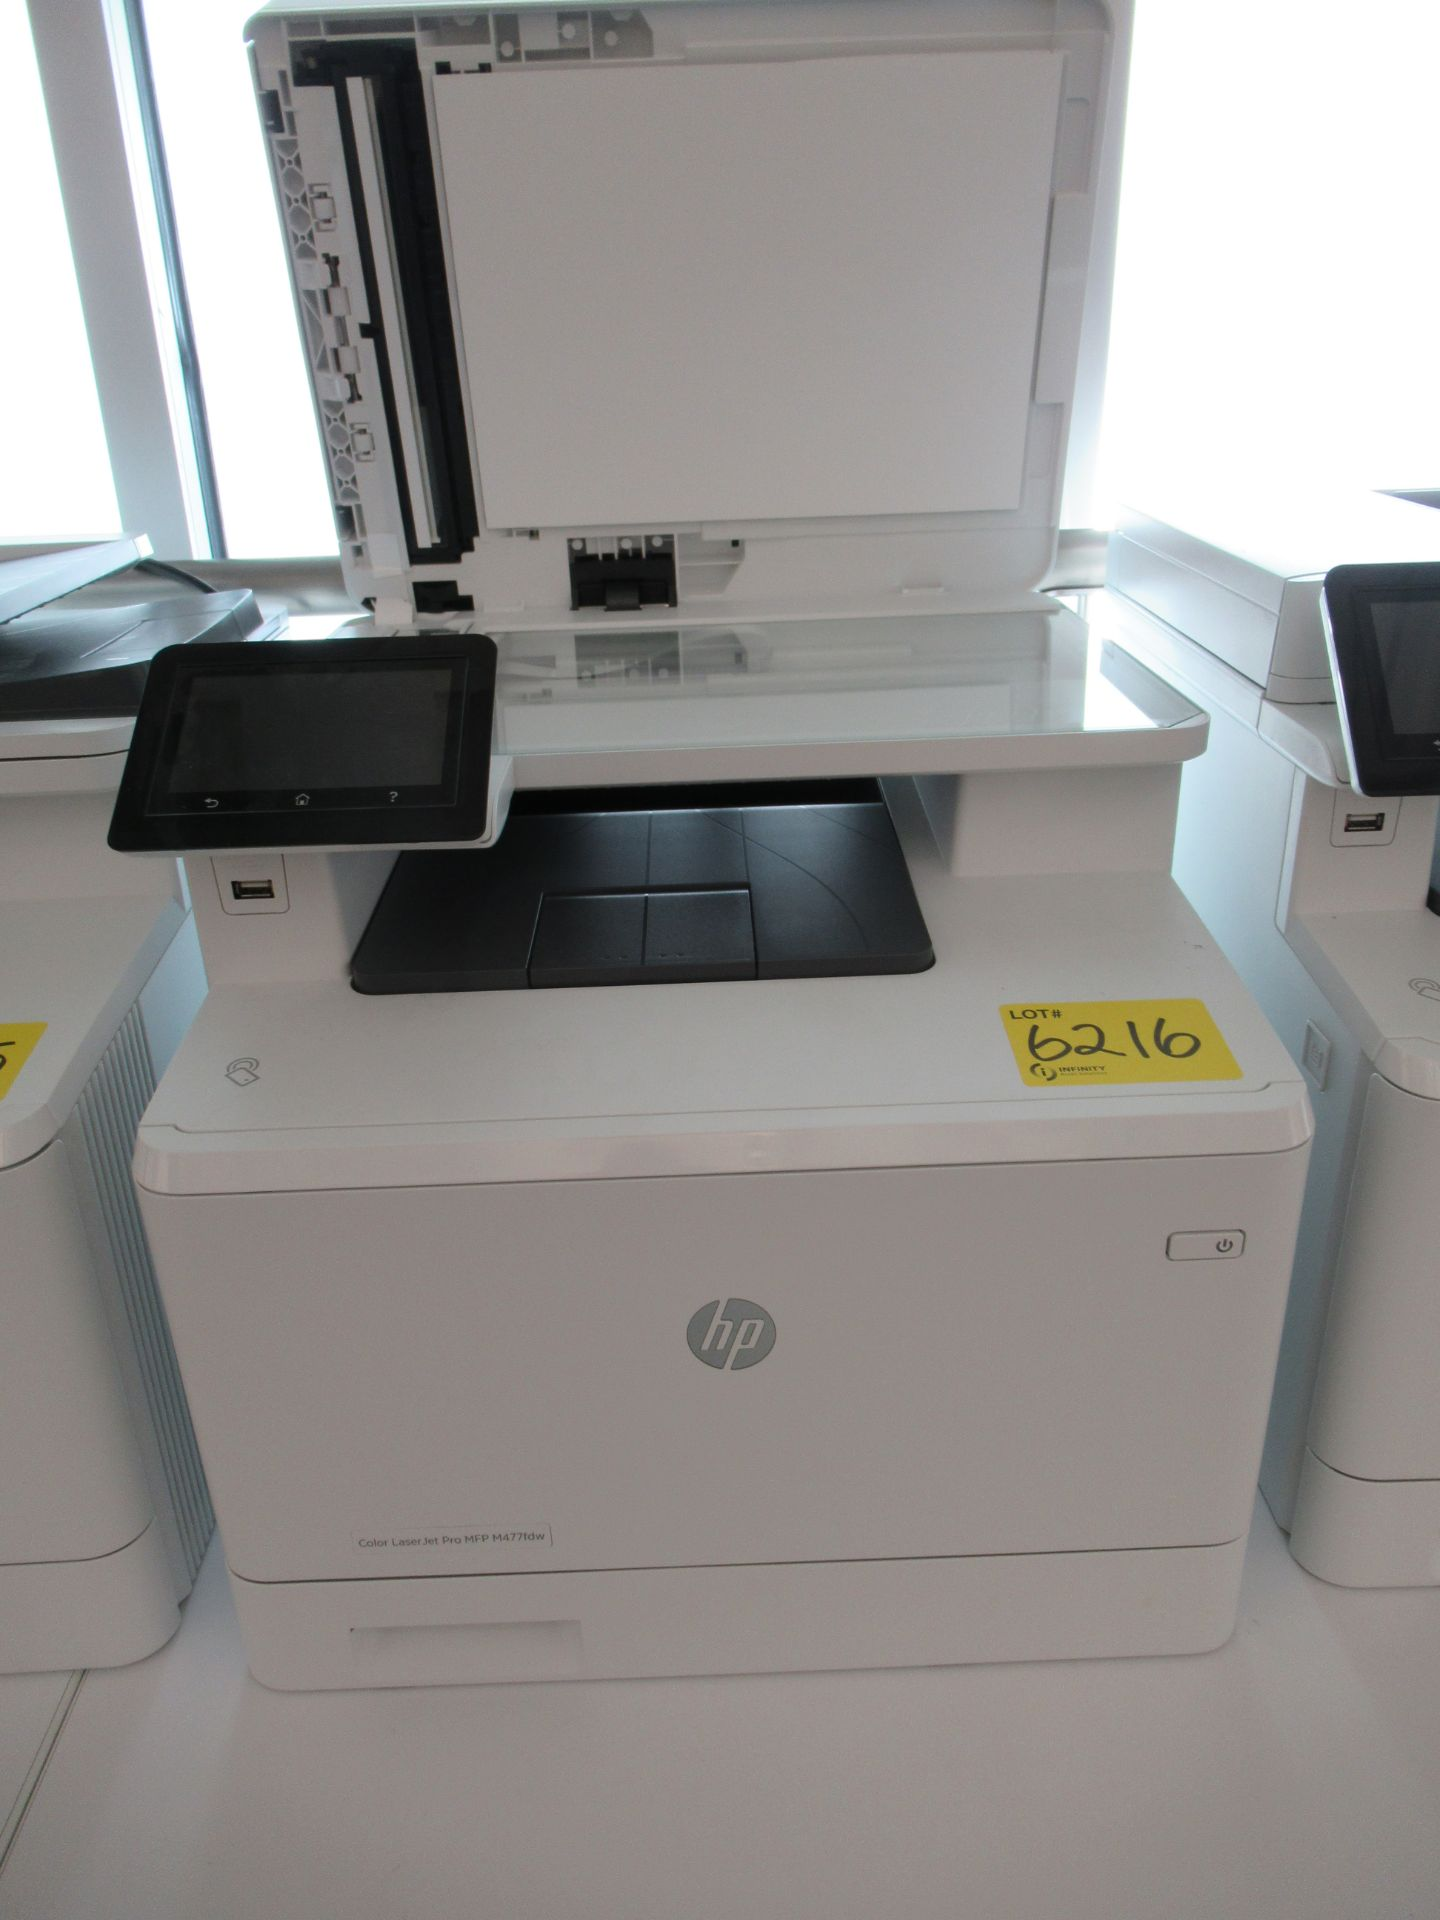 Lot 6216 - HP COLOUR LASERJET ENTERPRISE, MFP M477FDW PRINTER/COPIER (REUTER)